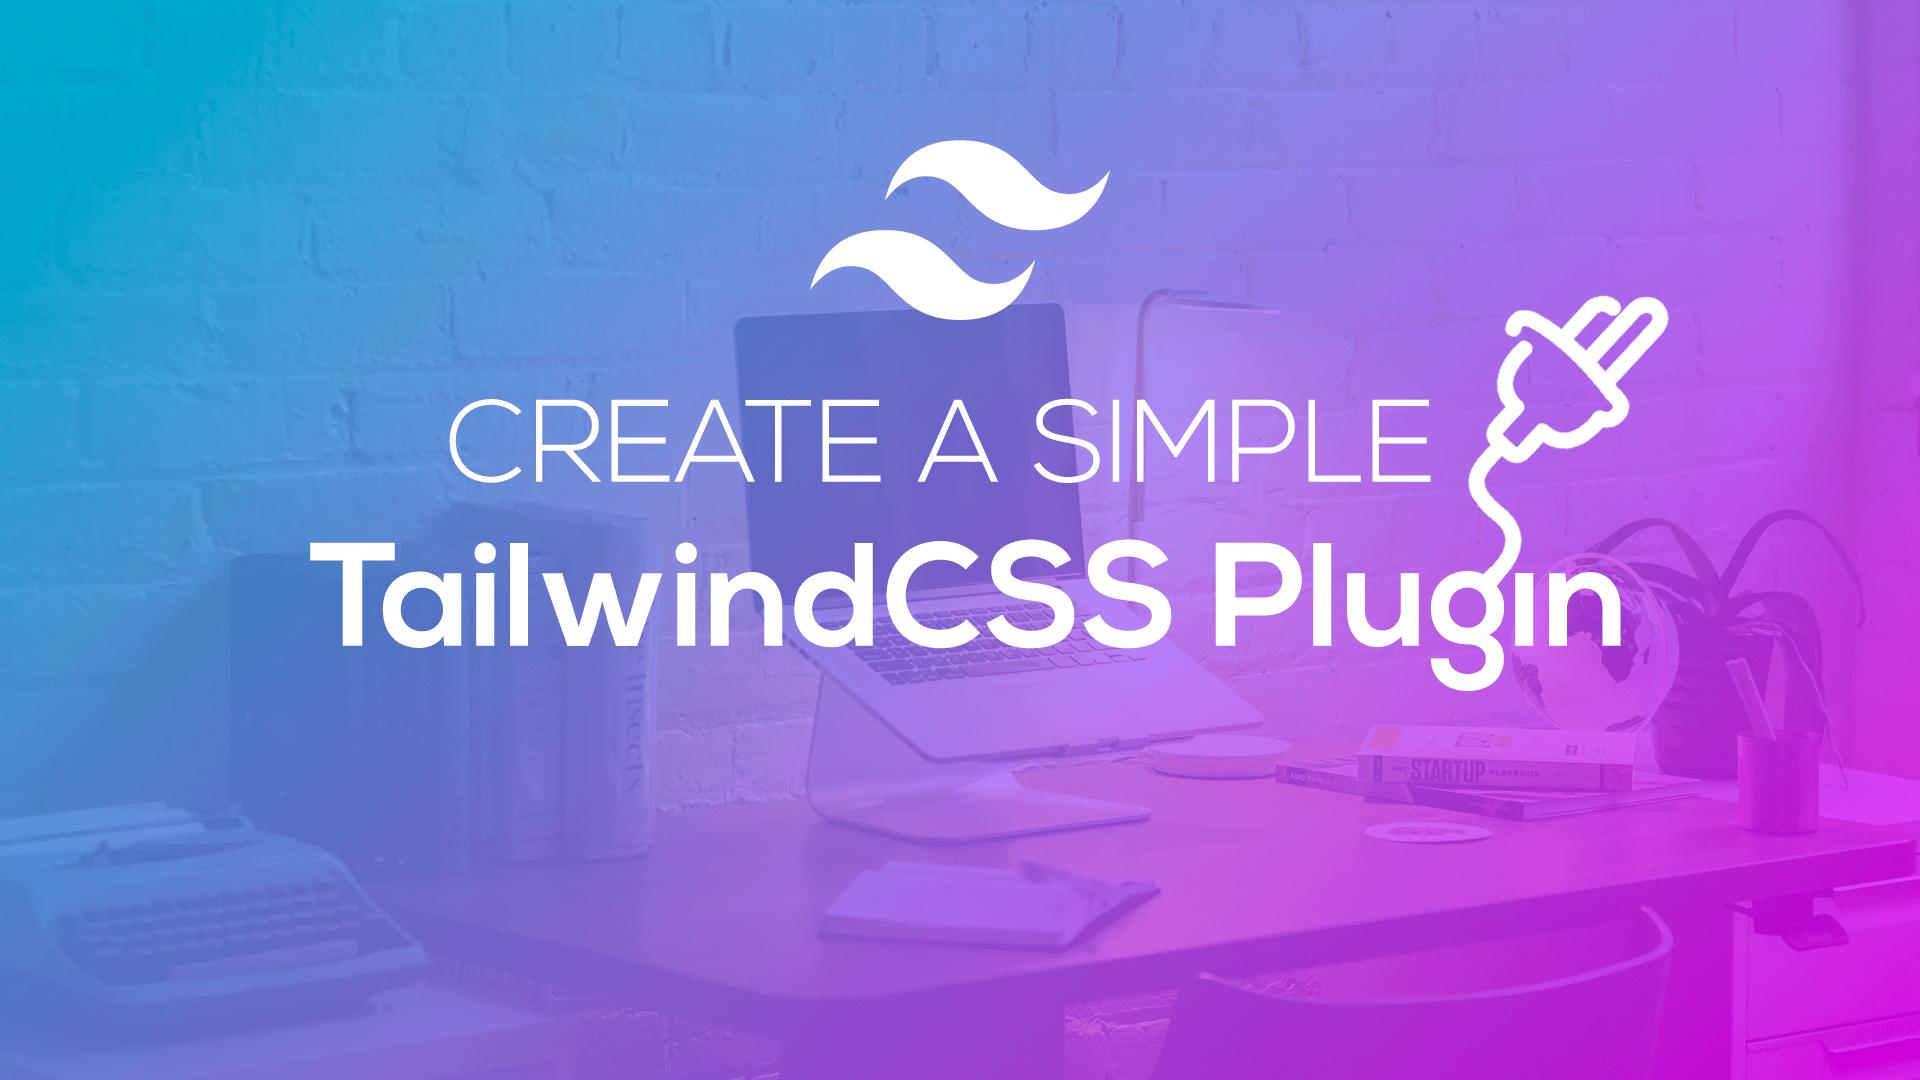 Create a Simple TailwindCSS Plugin